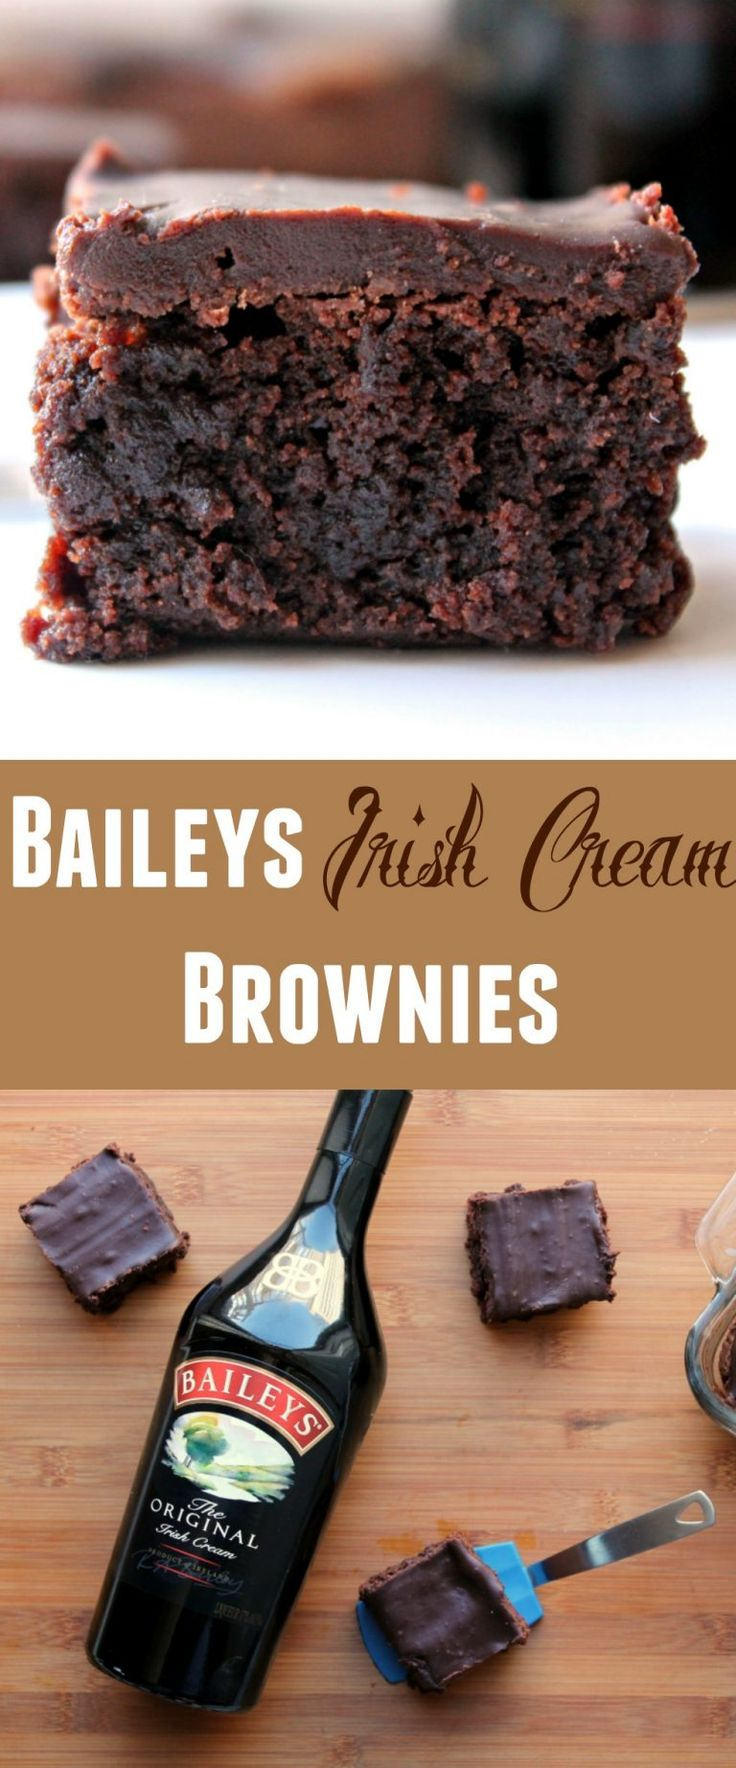 BAILEYS Irish Cream Brownies  - I've made these decadent fudgy brownies as easy as can be.  Just replace the water in your favorite box of fudge brownie mix.  Then the best part is the easy Baileys infused ganache topping!  Heavenly.  Don't even bother waiting until St. Patrick's Day for this treat!!!